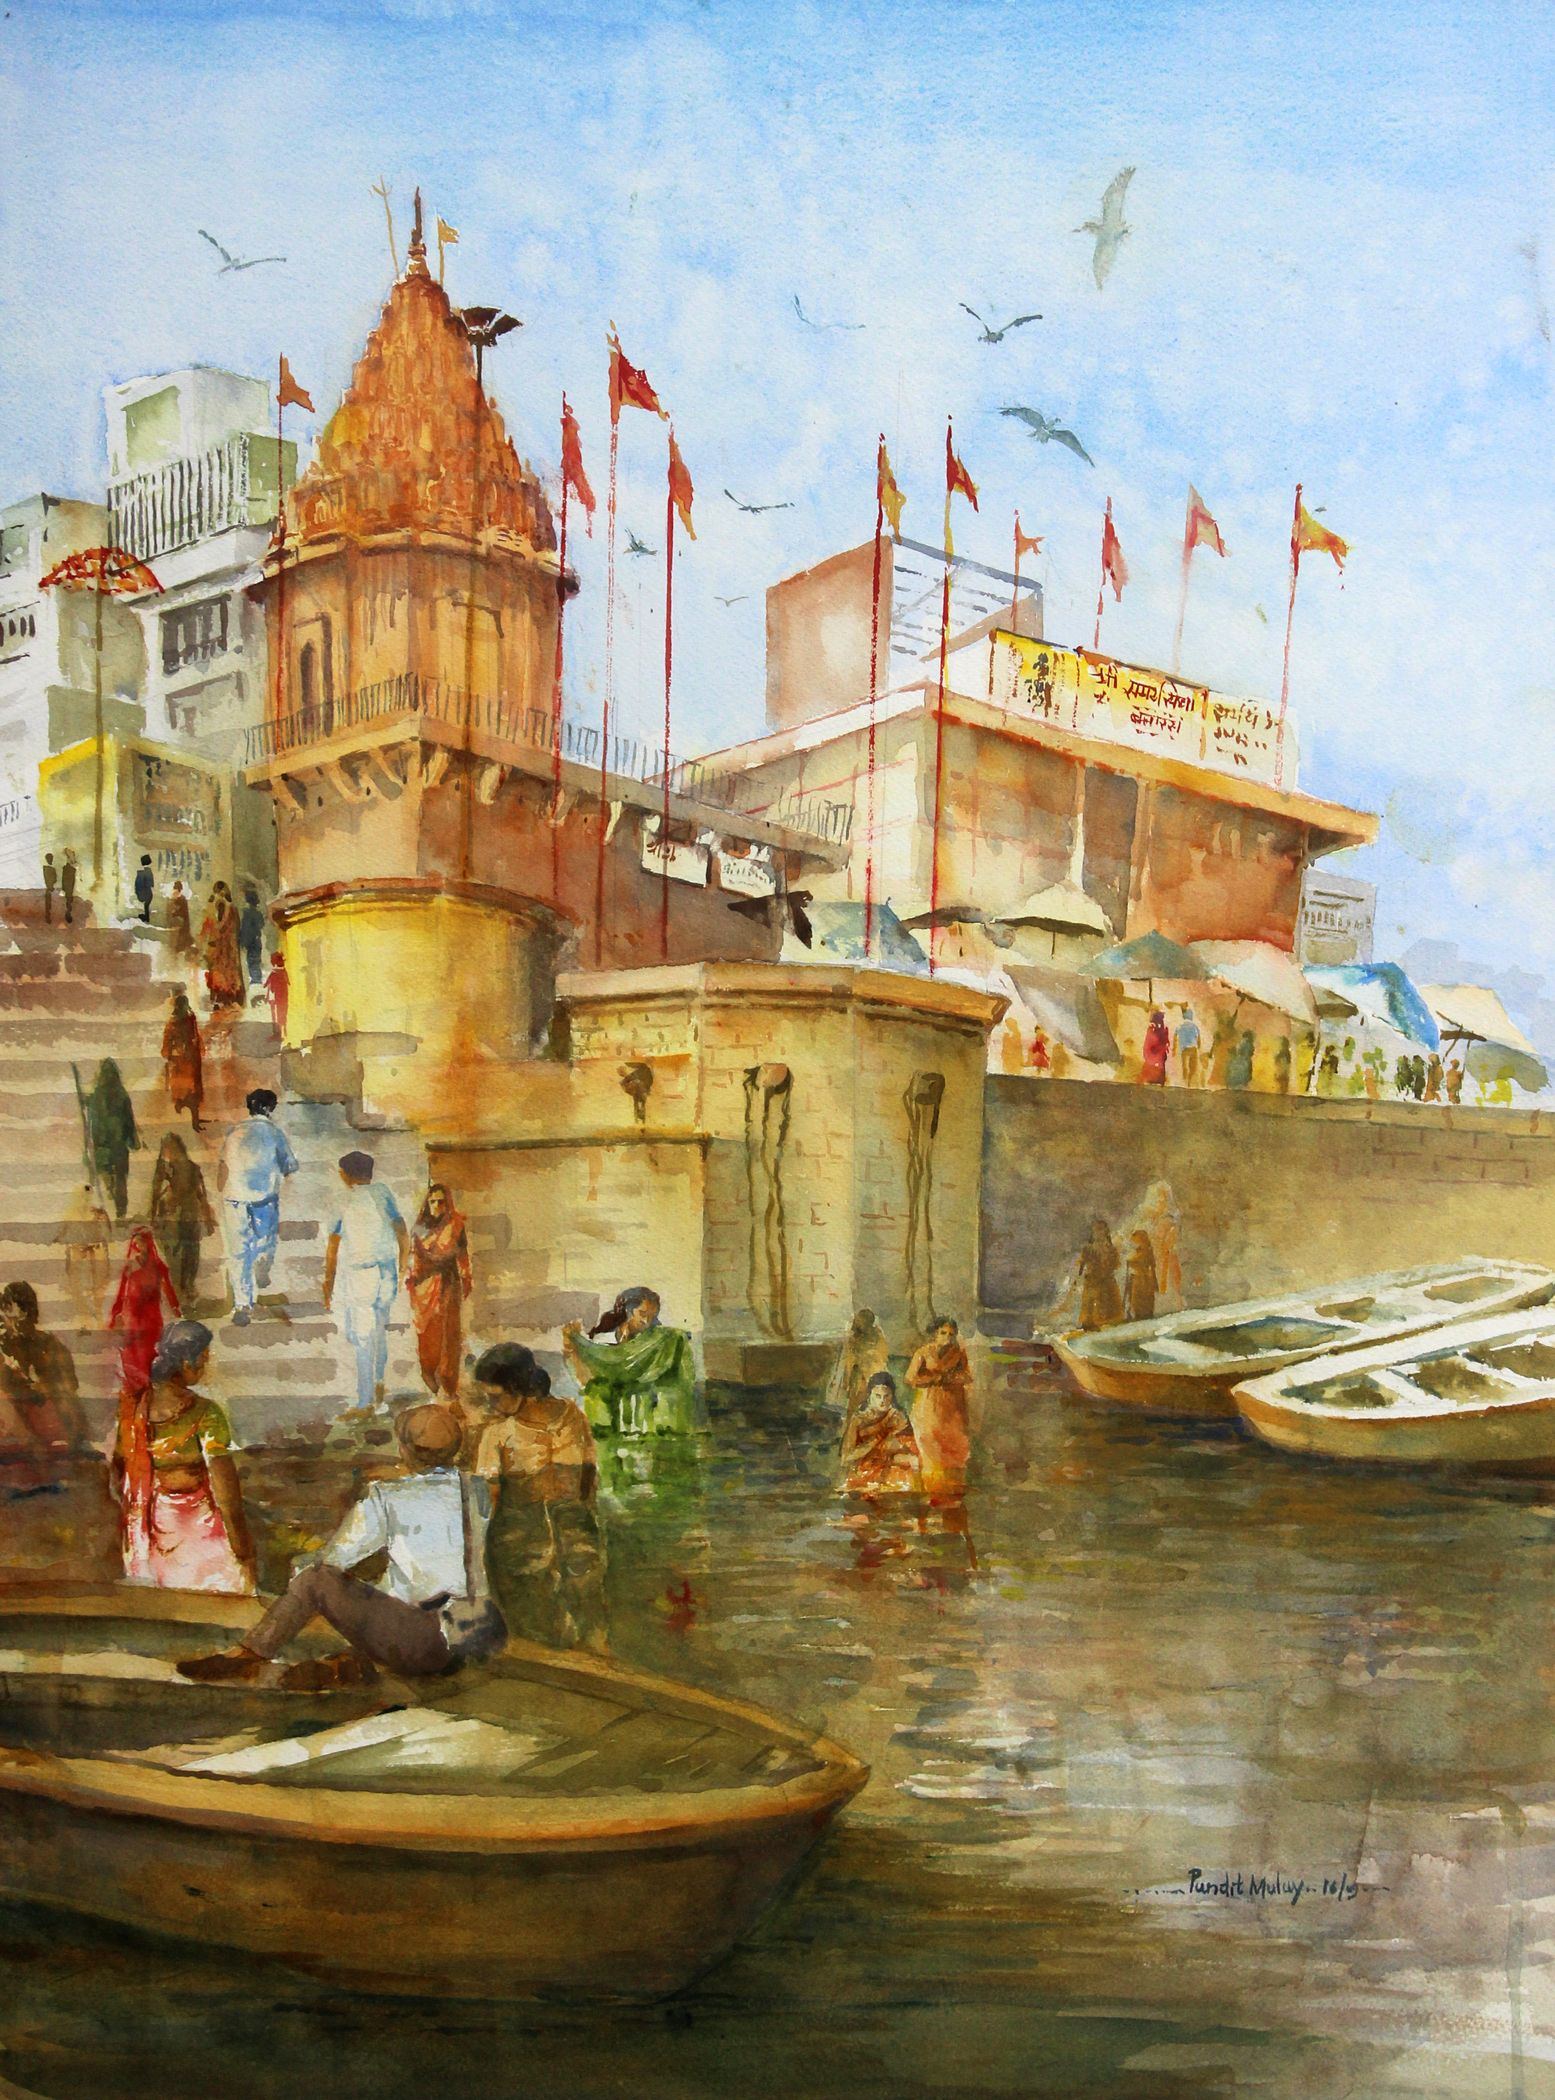 Art farm animal watercolor painting on canvas art 8x10 artsyhome - Banaras Ghat 4 Painting By Artist Pandit Mulay Gallerist